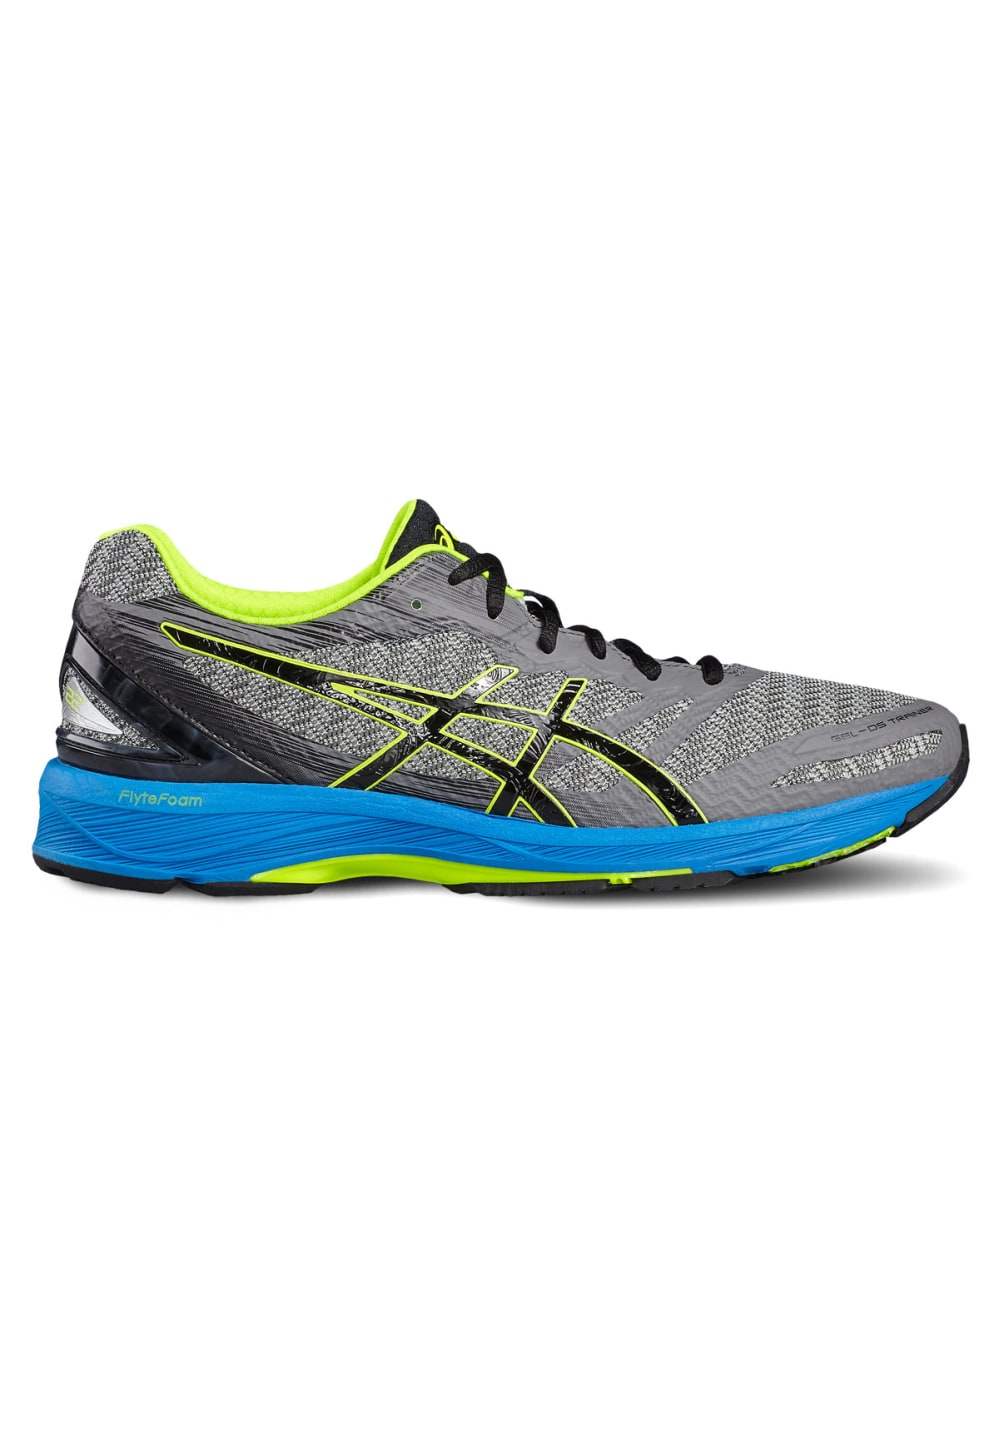 buy popular 9d740 d9f10 ASICS GEL-DS Trainer 22 - Running shoes for Men - Grey